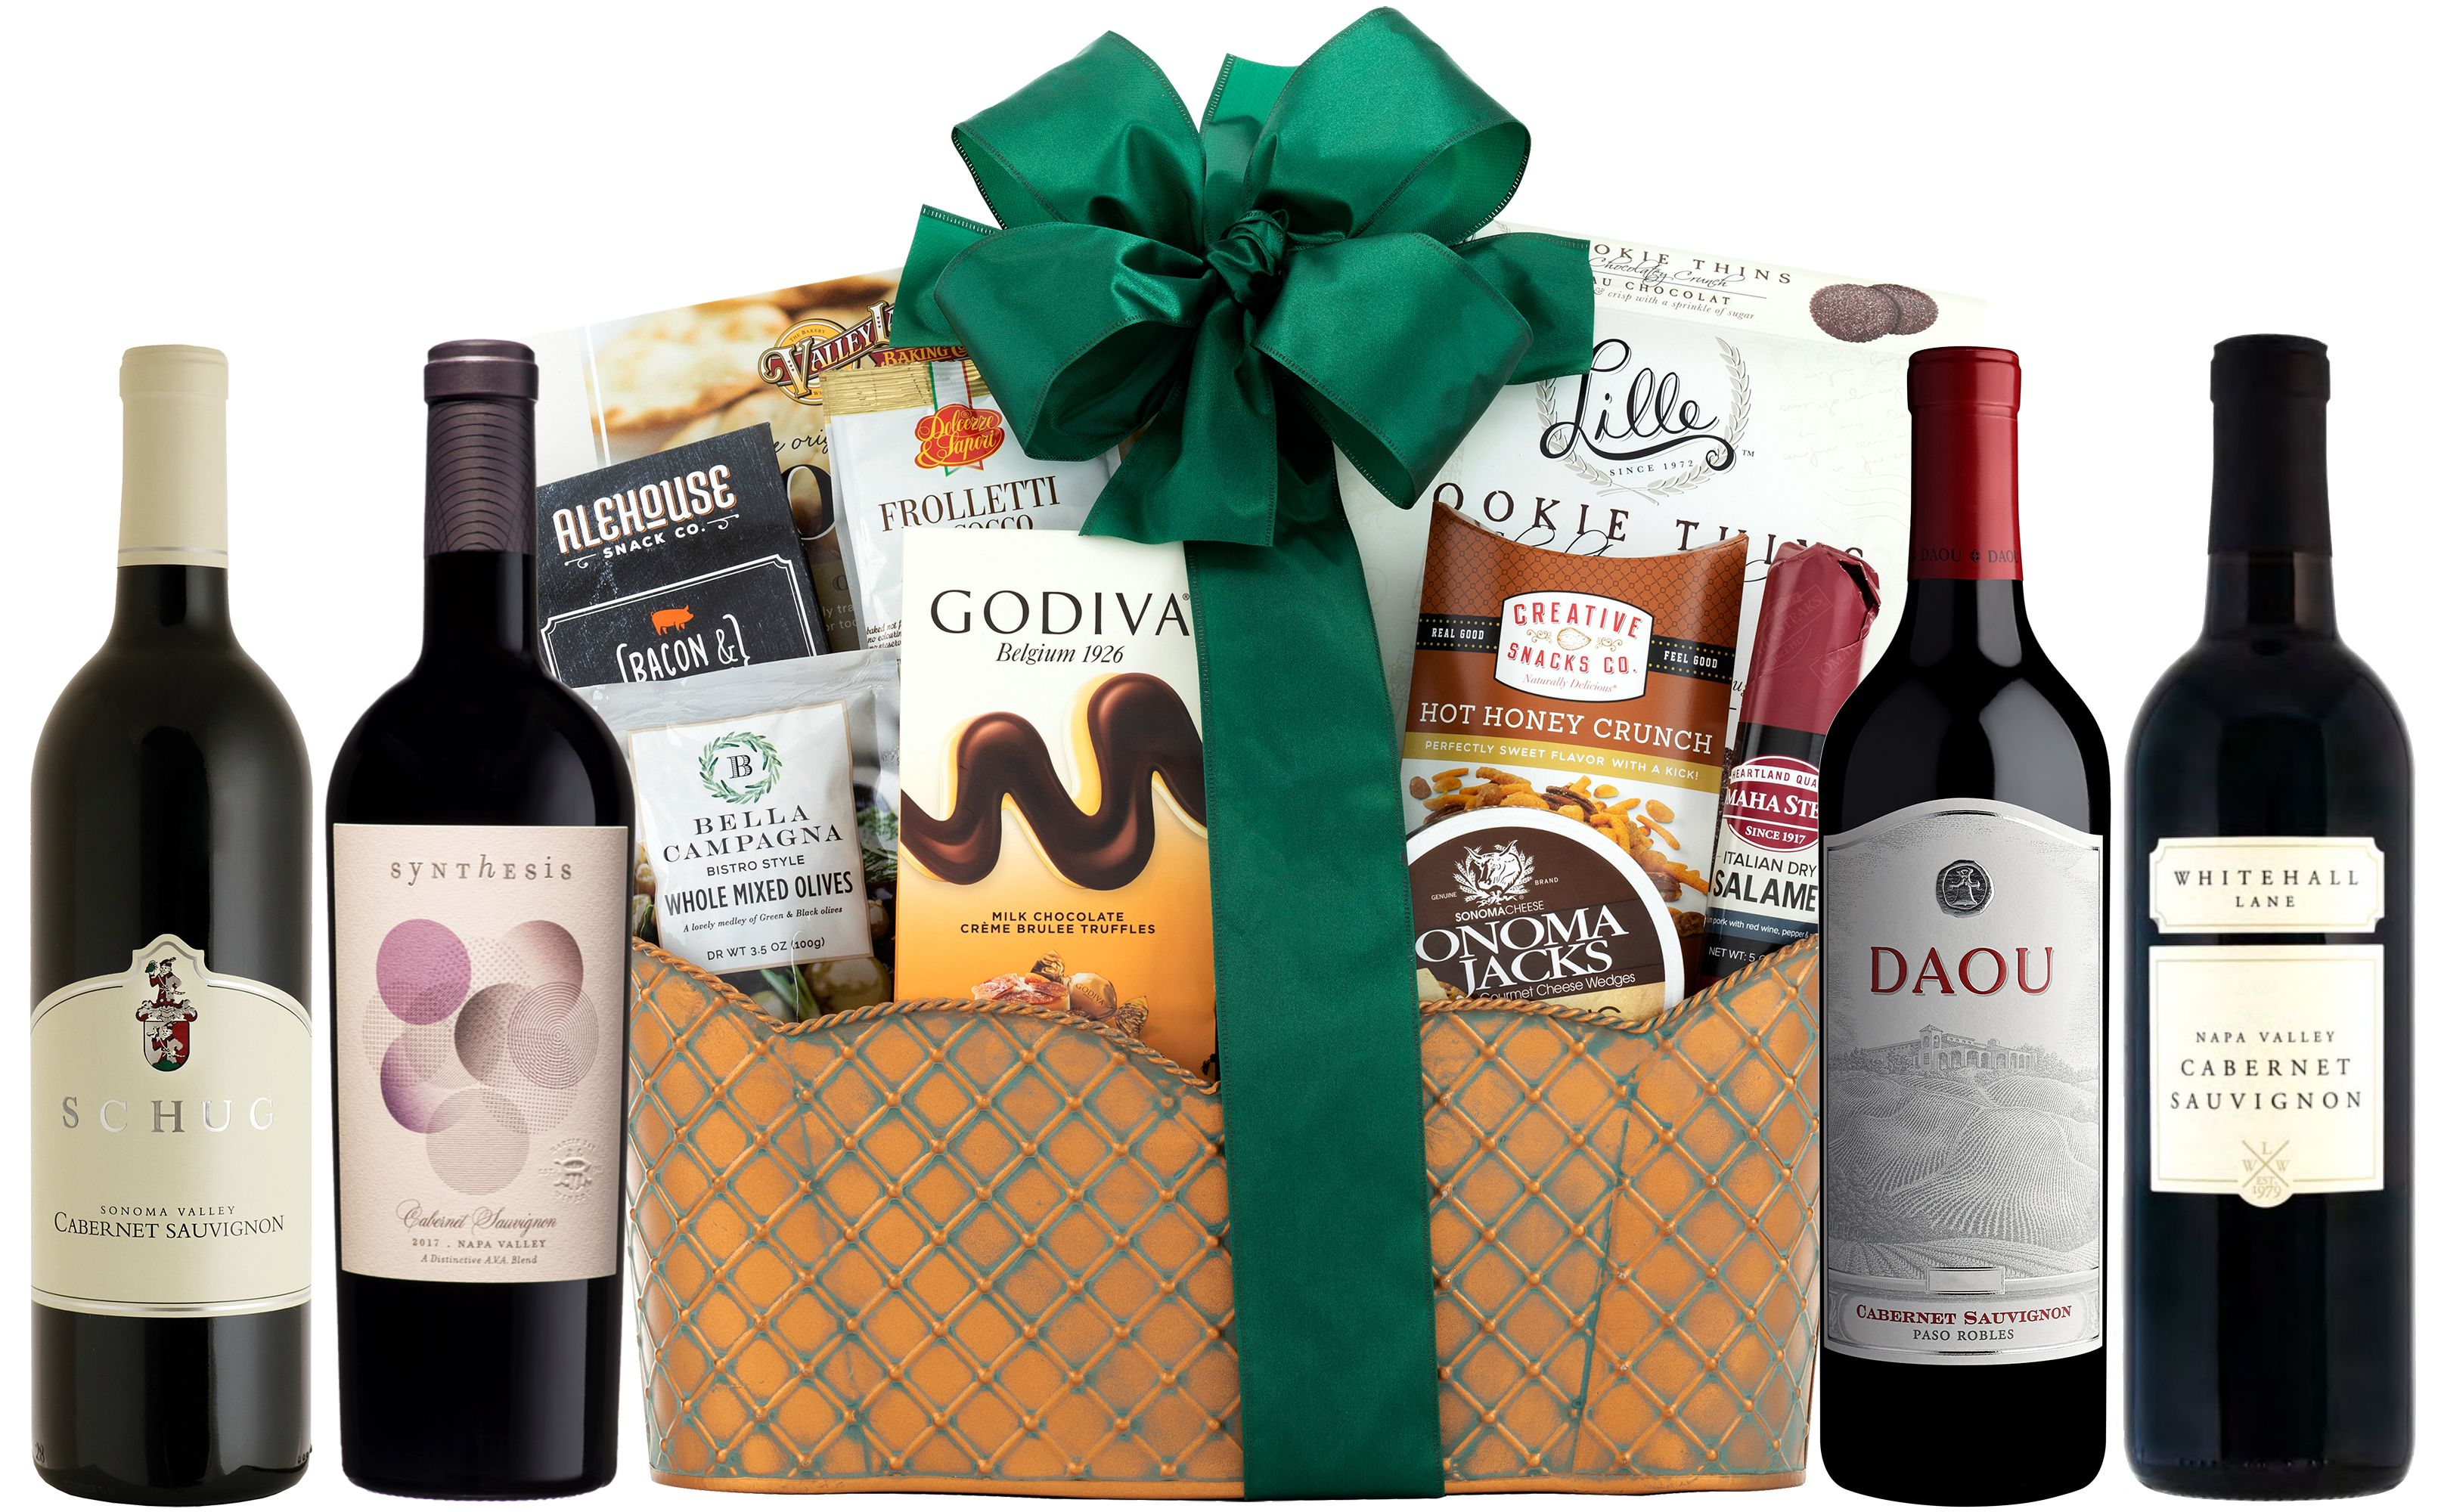 wine.com 90 Point Executive Selection Cabernet Gift Basket  Gift Product Image